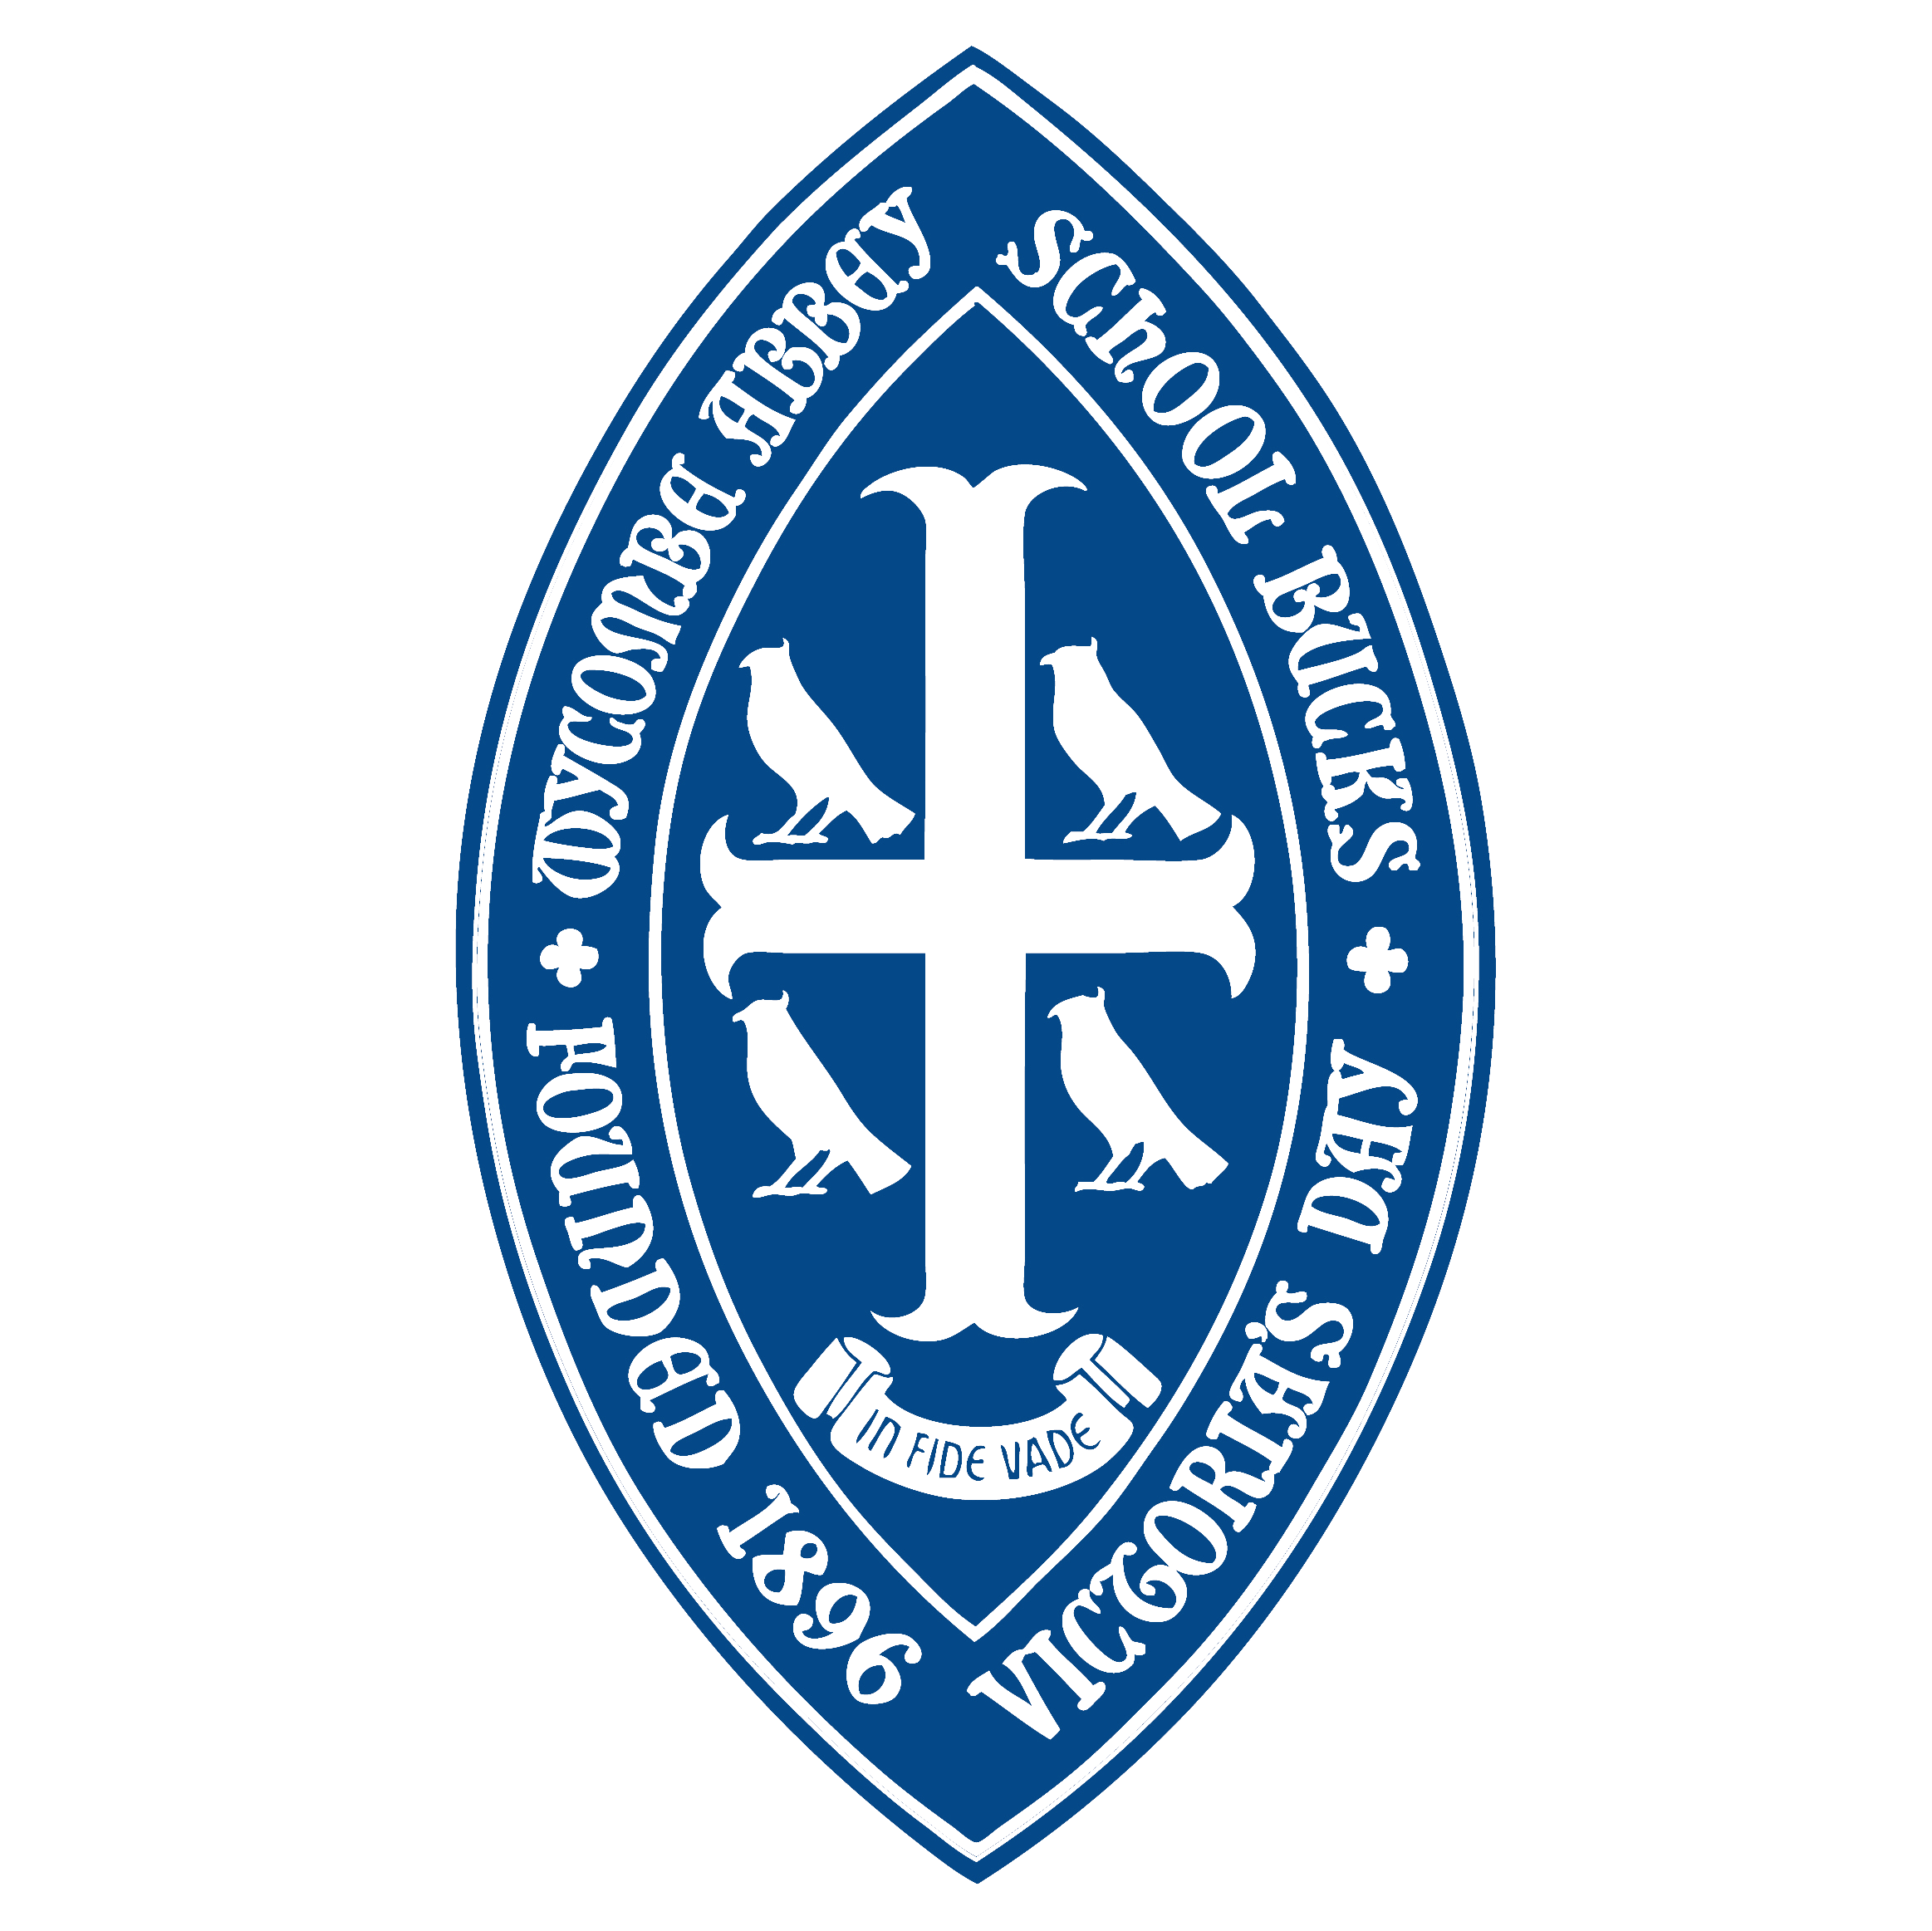 Wycombe_Abbey_Logo.png